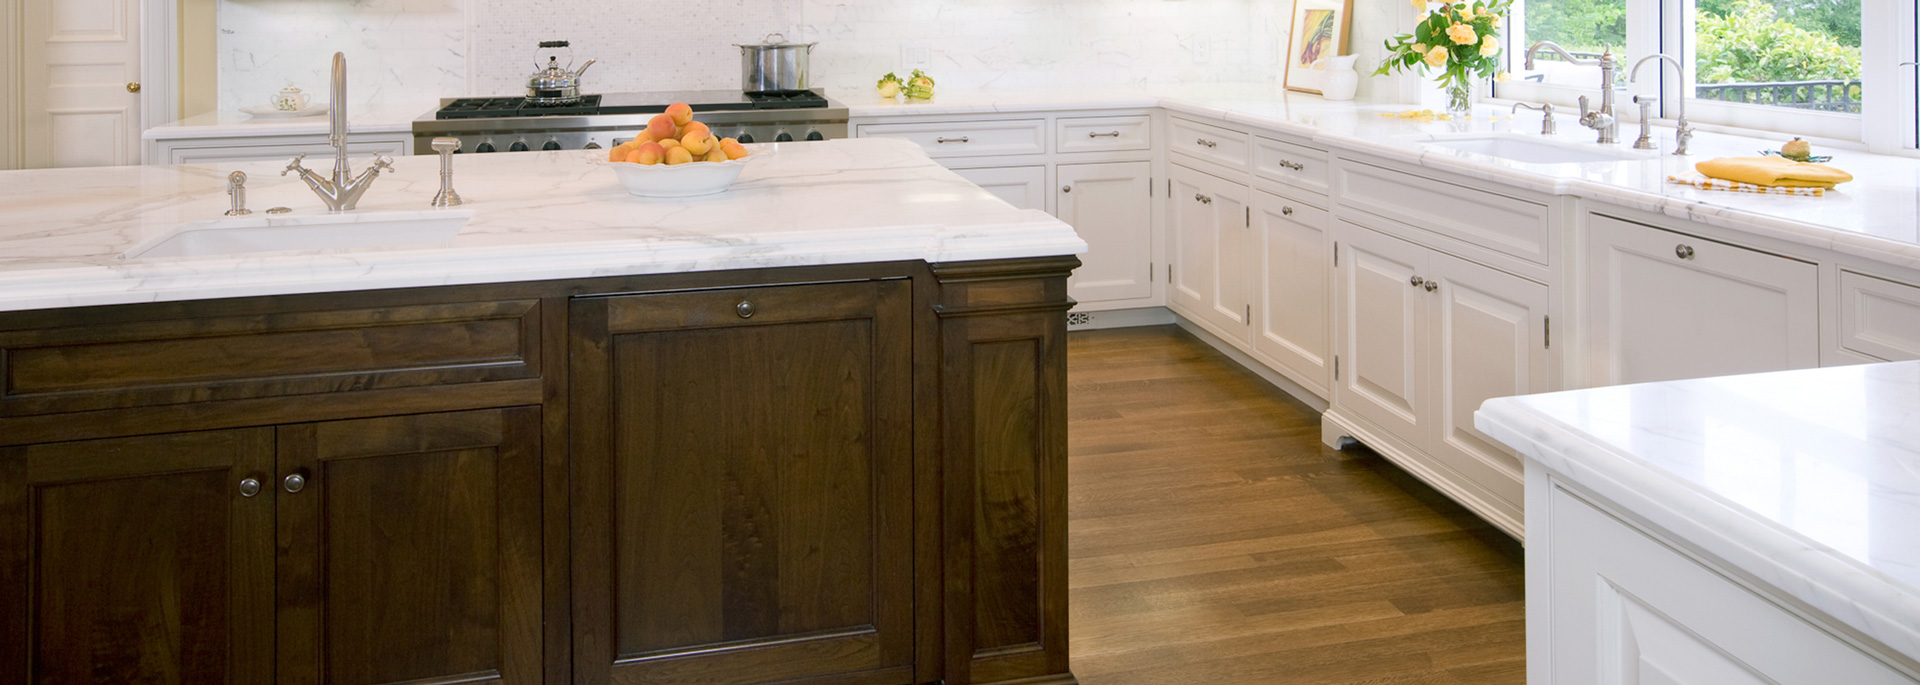 H & R Homes Remodeling is an authorized Welborn Cabinet dealer